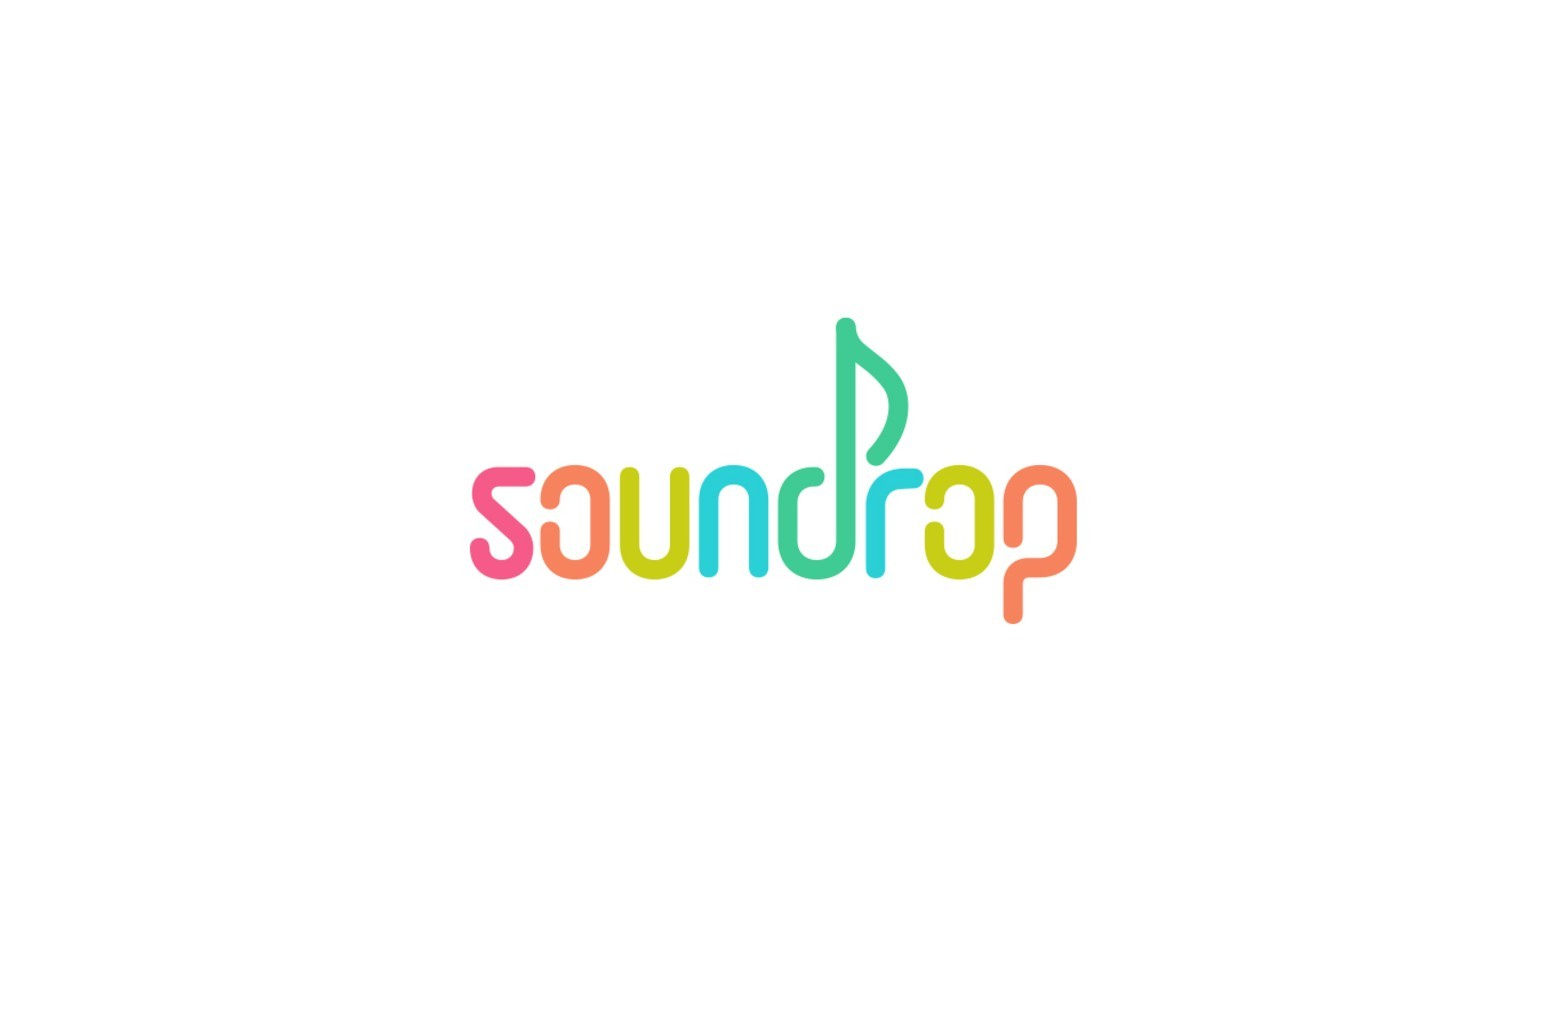 Soundrop Lowers Price to 99 Cents